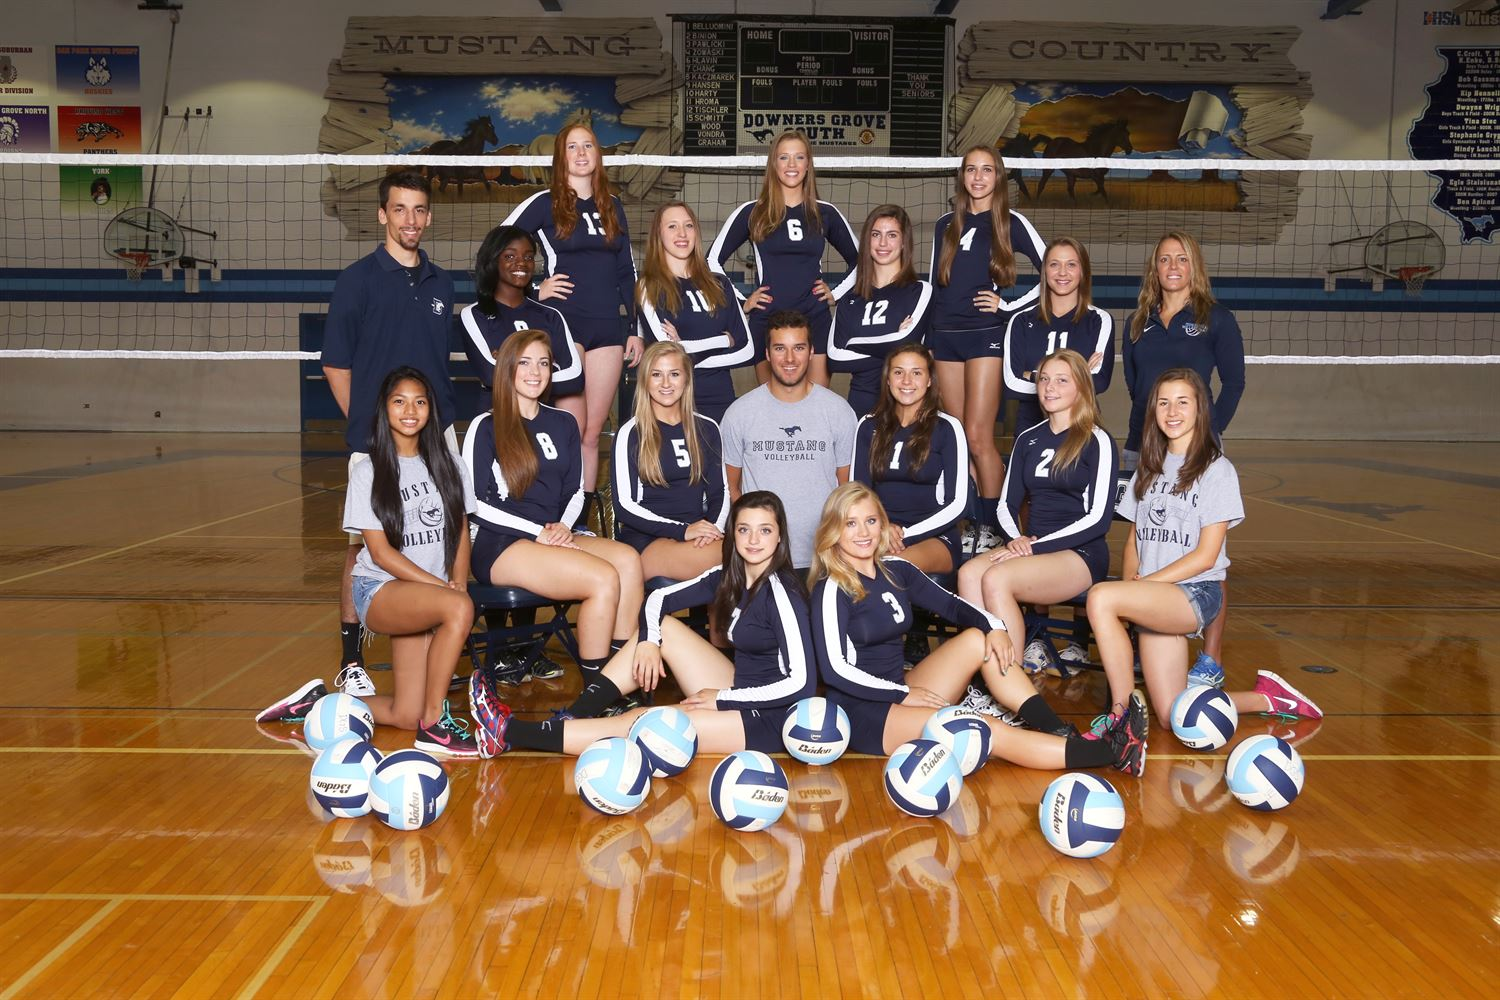 Downers Grove South High School - Girls Varsity Volleyball